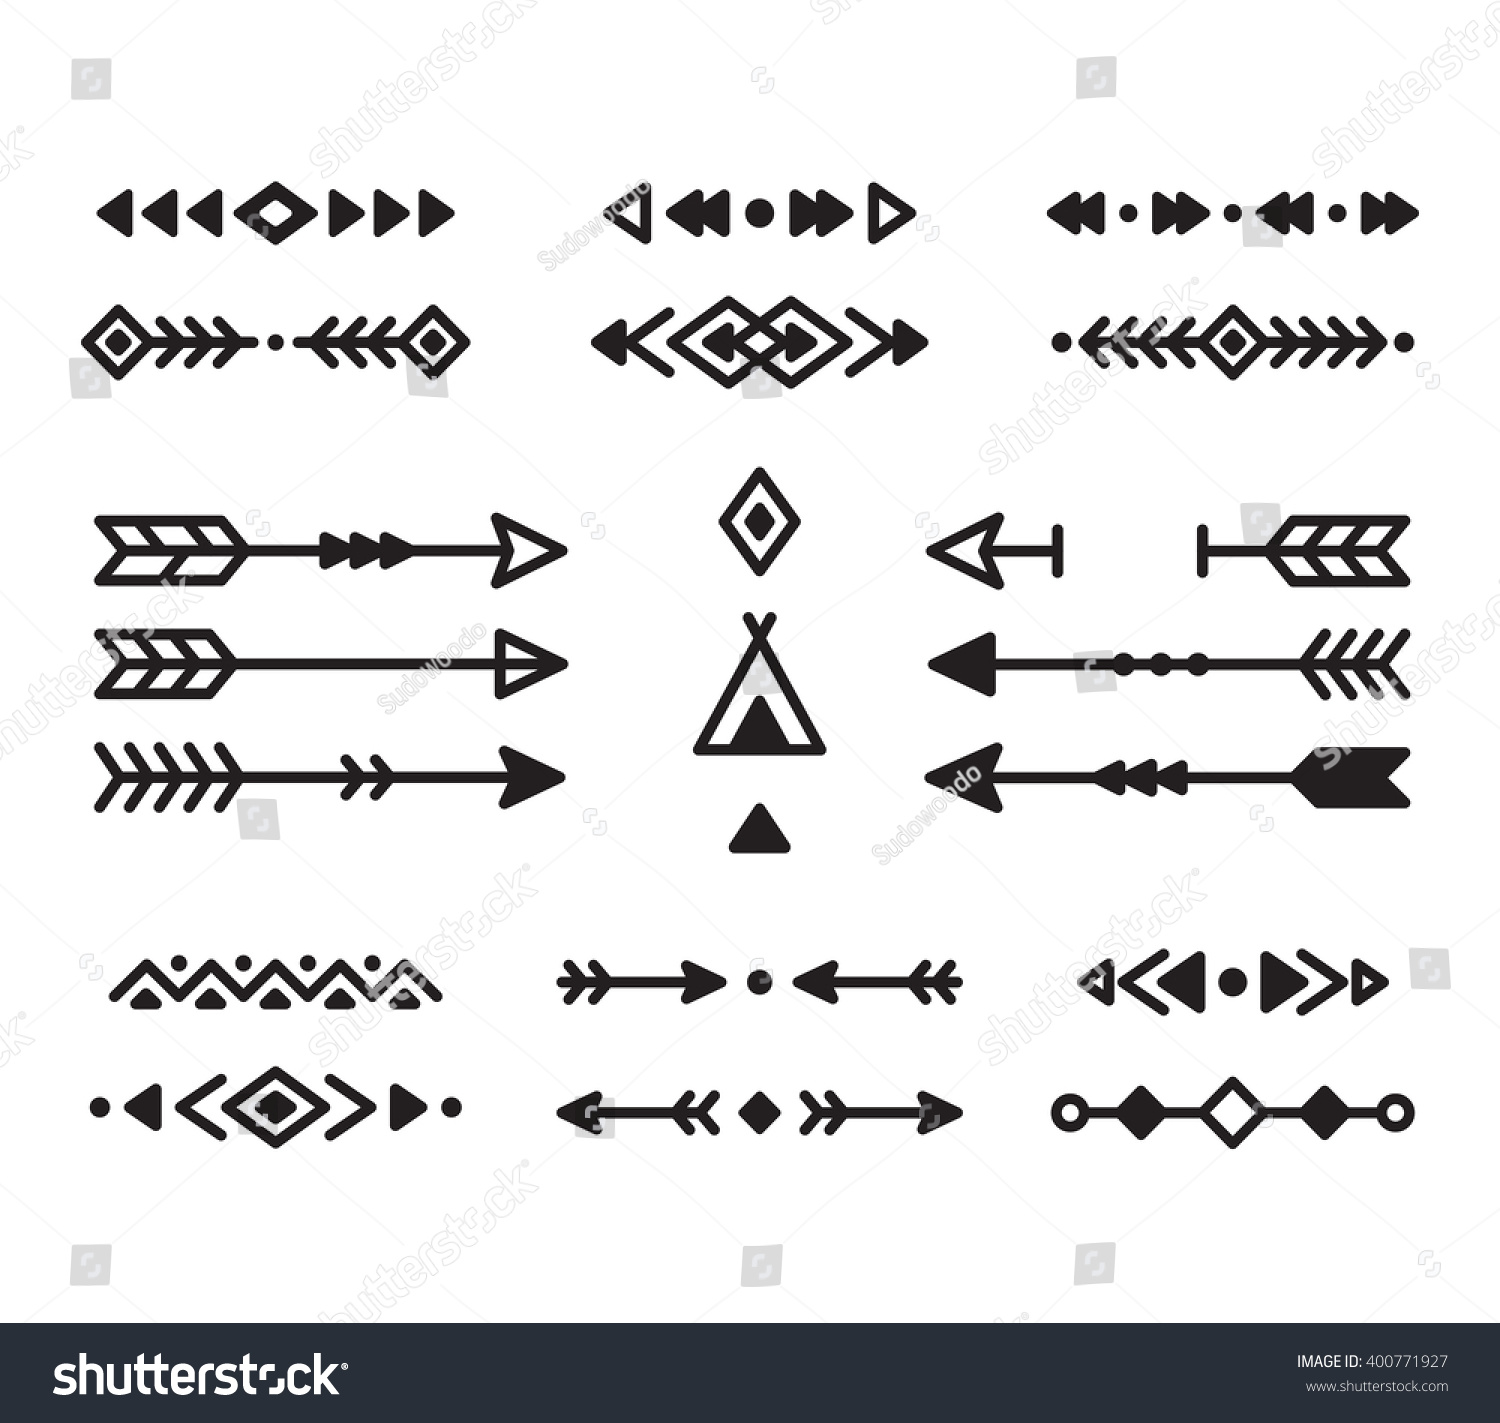 Friendship Symbol Native American 27519 Usbdata